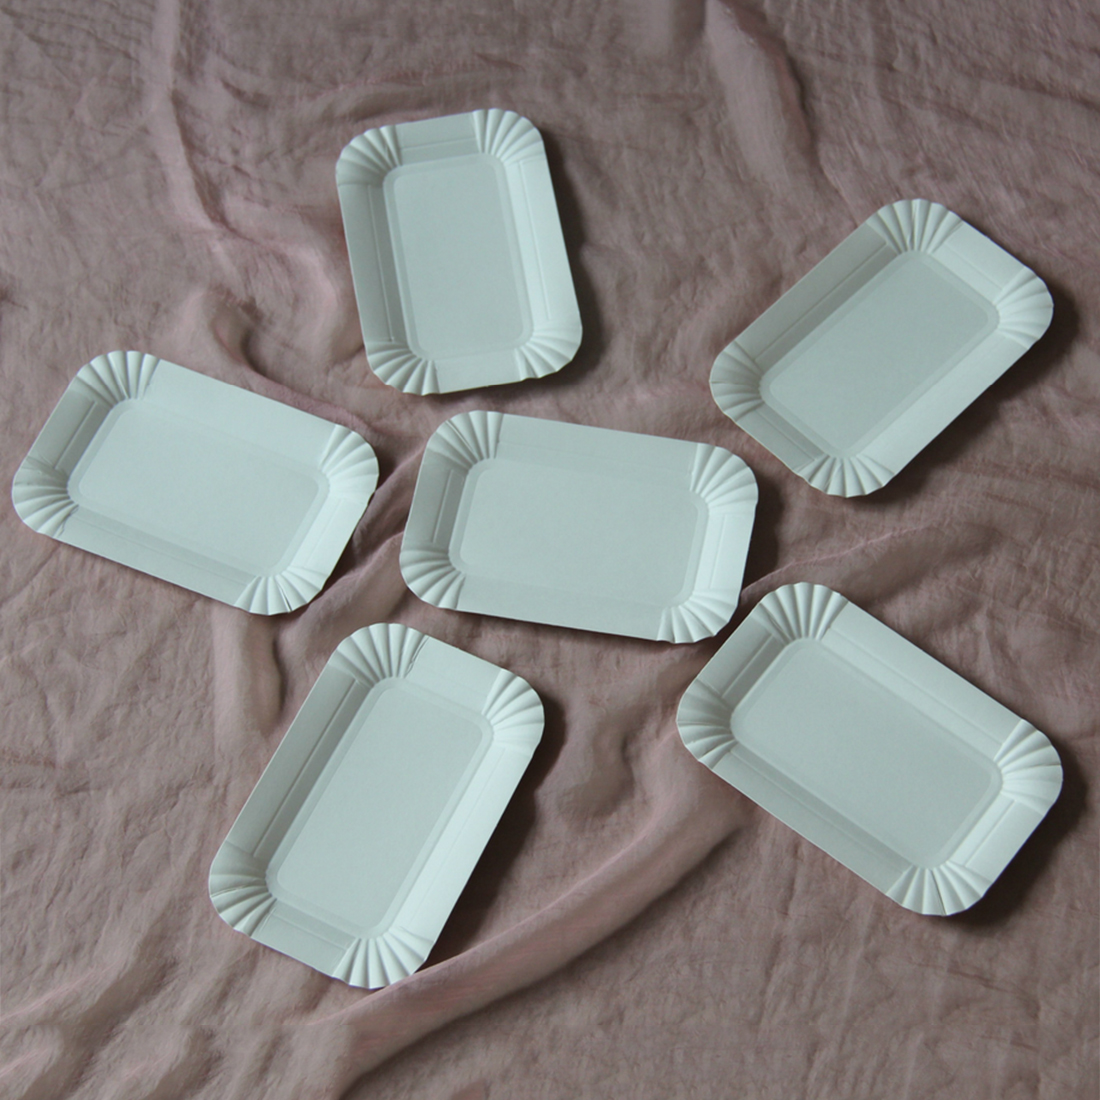 Hot selling 20Pcs Disposable paper plates Rectangular Dinnerware Paper Plates festival Easter wedding party supplies-in Disposable Party Tableware from Home ... & Hot selling 20Pcs Disposable paper plates Rectangular Dinnerware ...